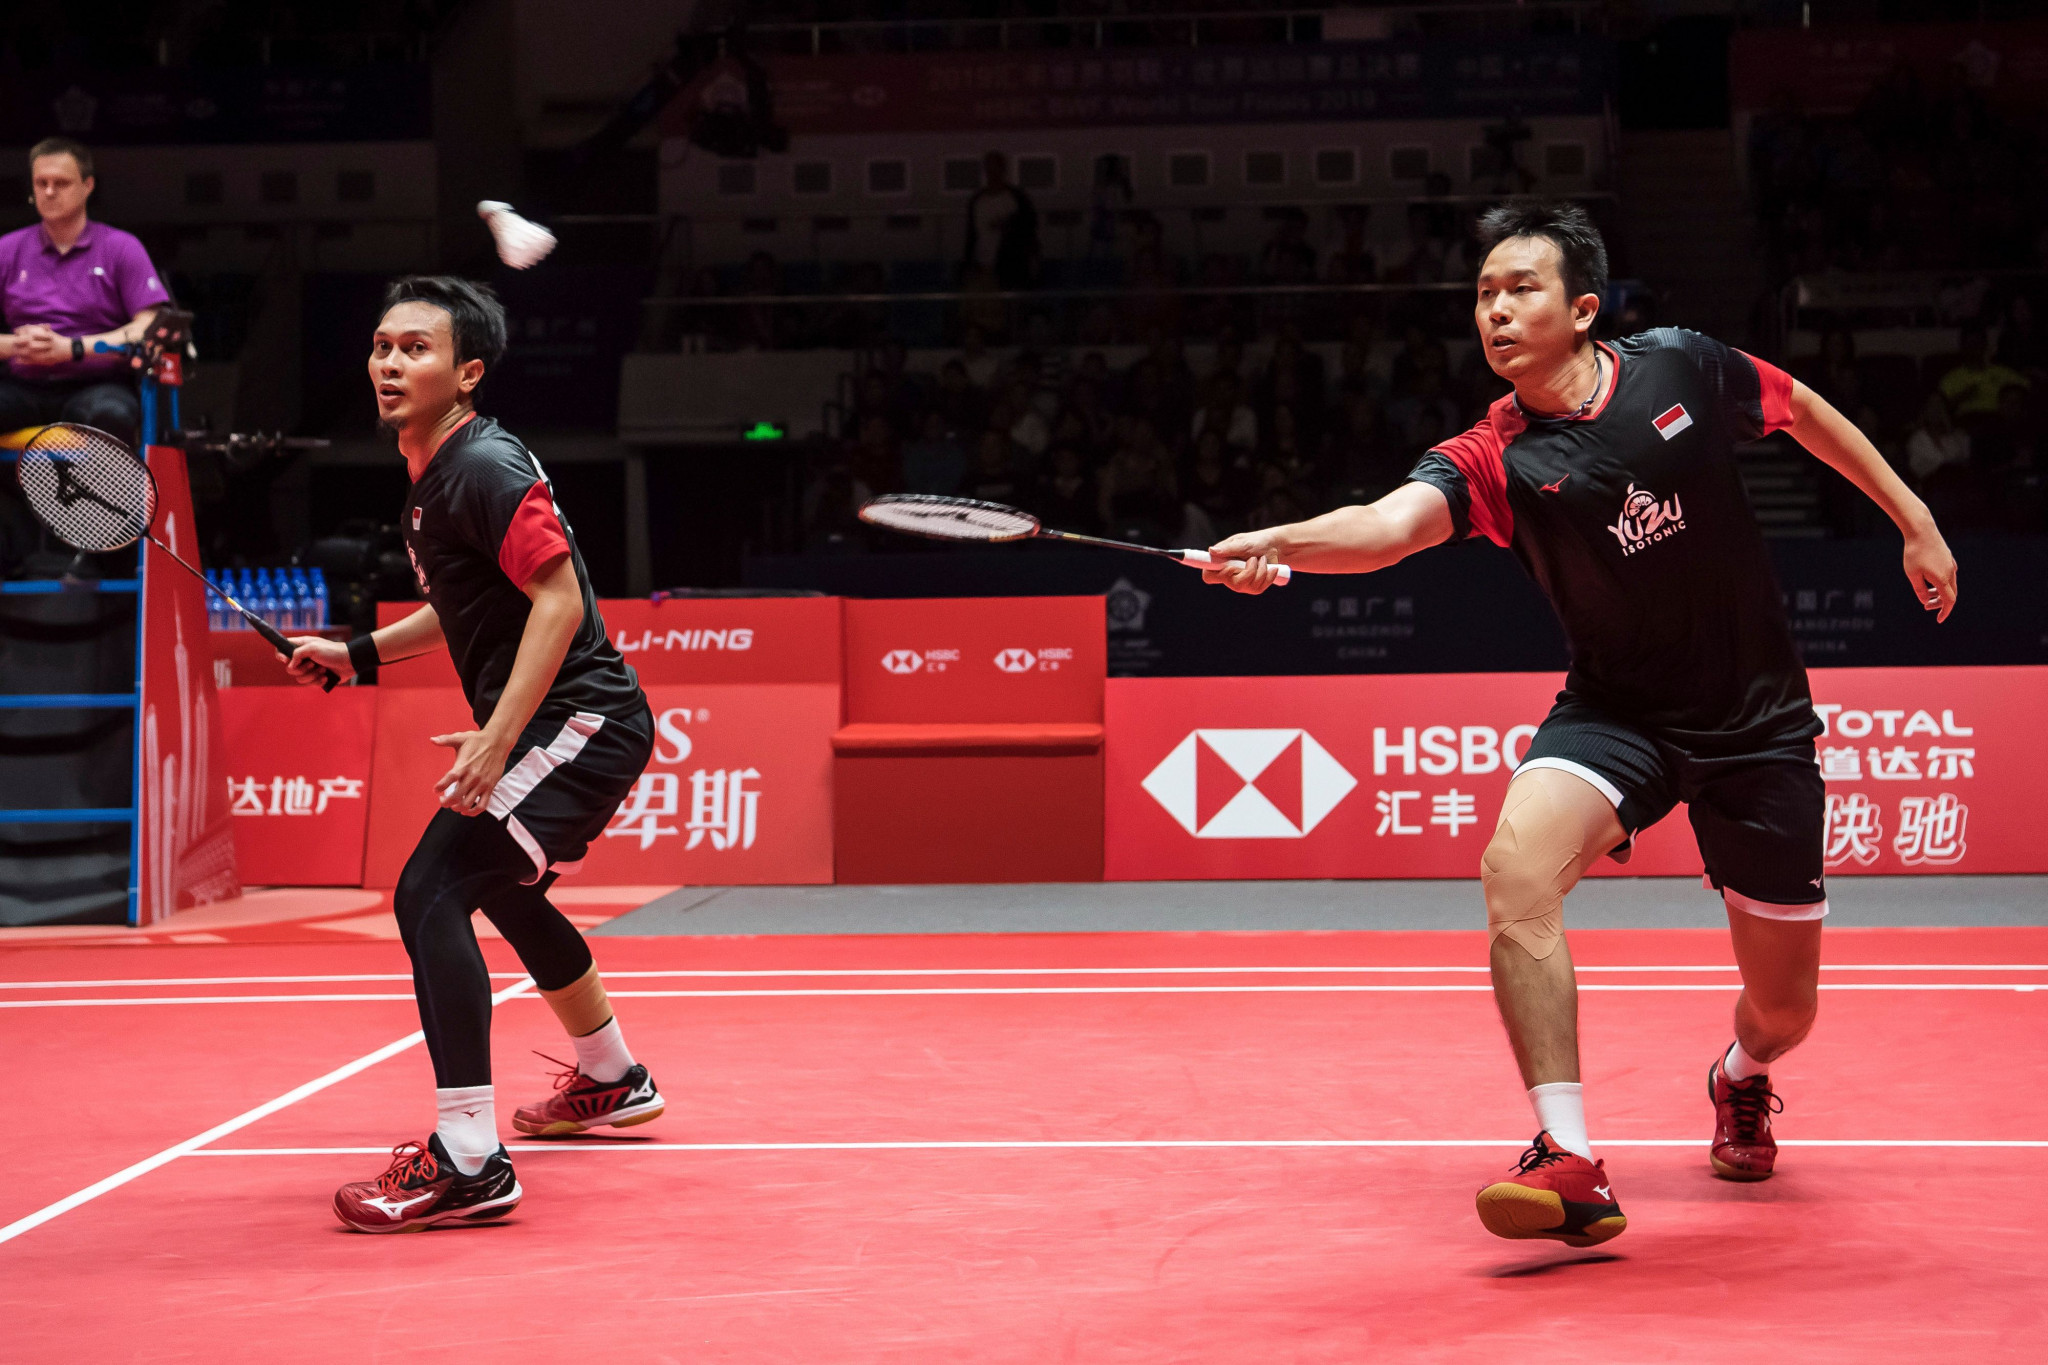 Indonesia's world champions Mohammad Ahsan and Hendra Setiawan went through in the men's doubles ©Getty Images